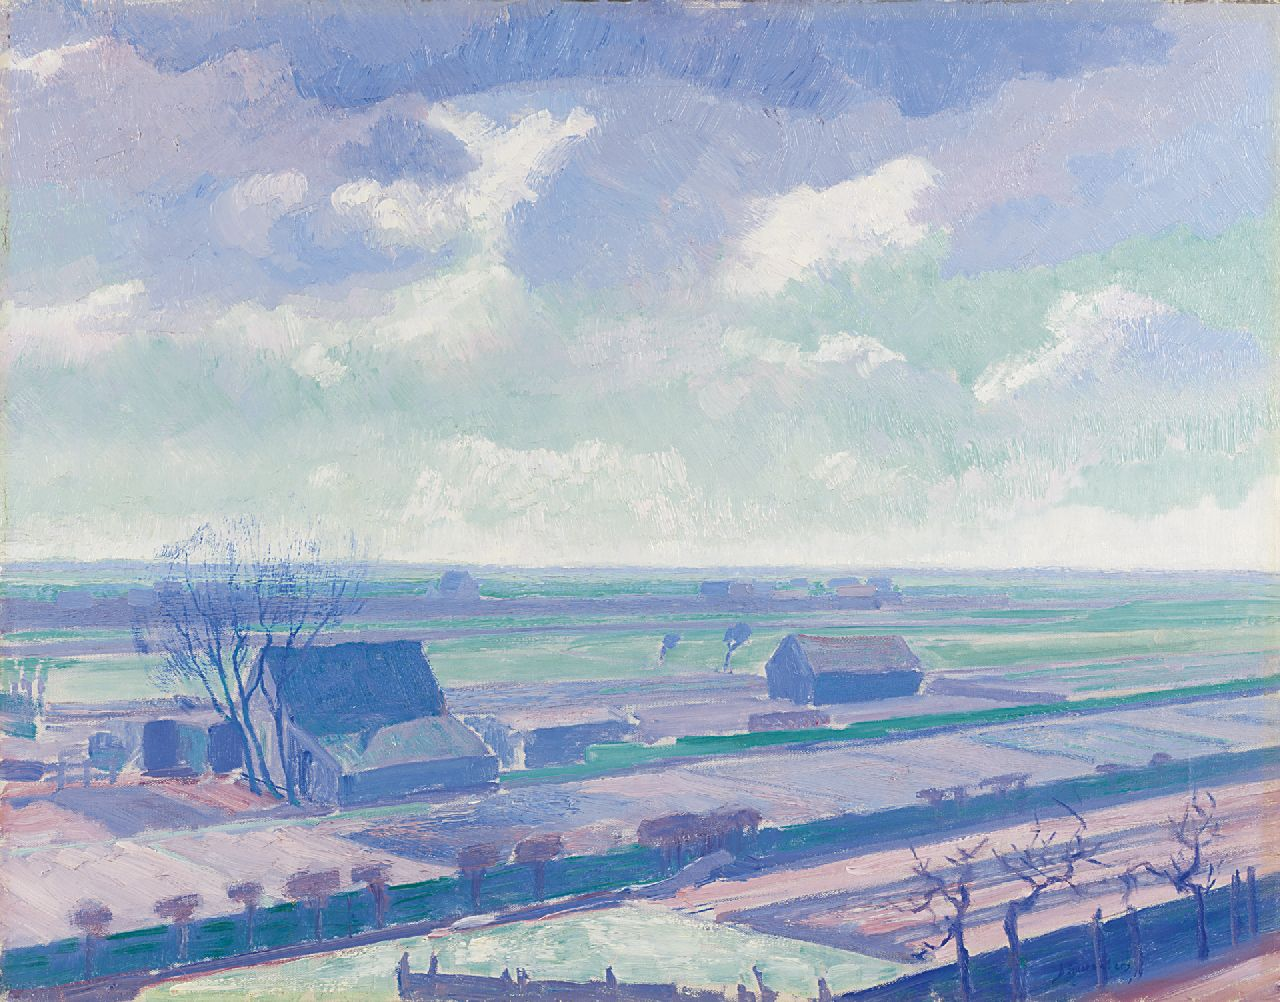 Smorenberg D.  | Dirk Smorenberg, Farms near Loosdrecht, oil on canvas 54.3 x 69.3 cm, signed l.r. and dated '14